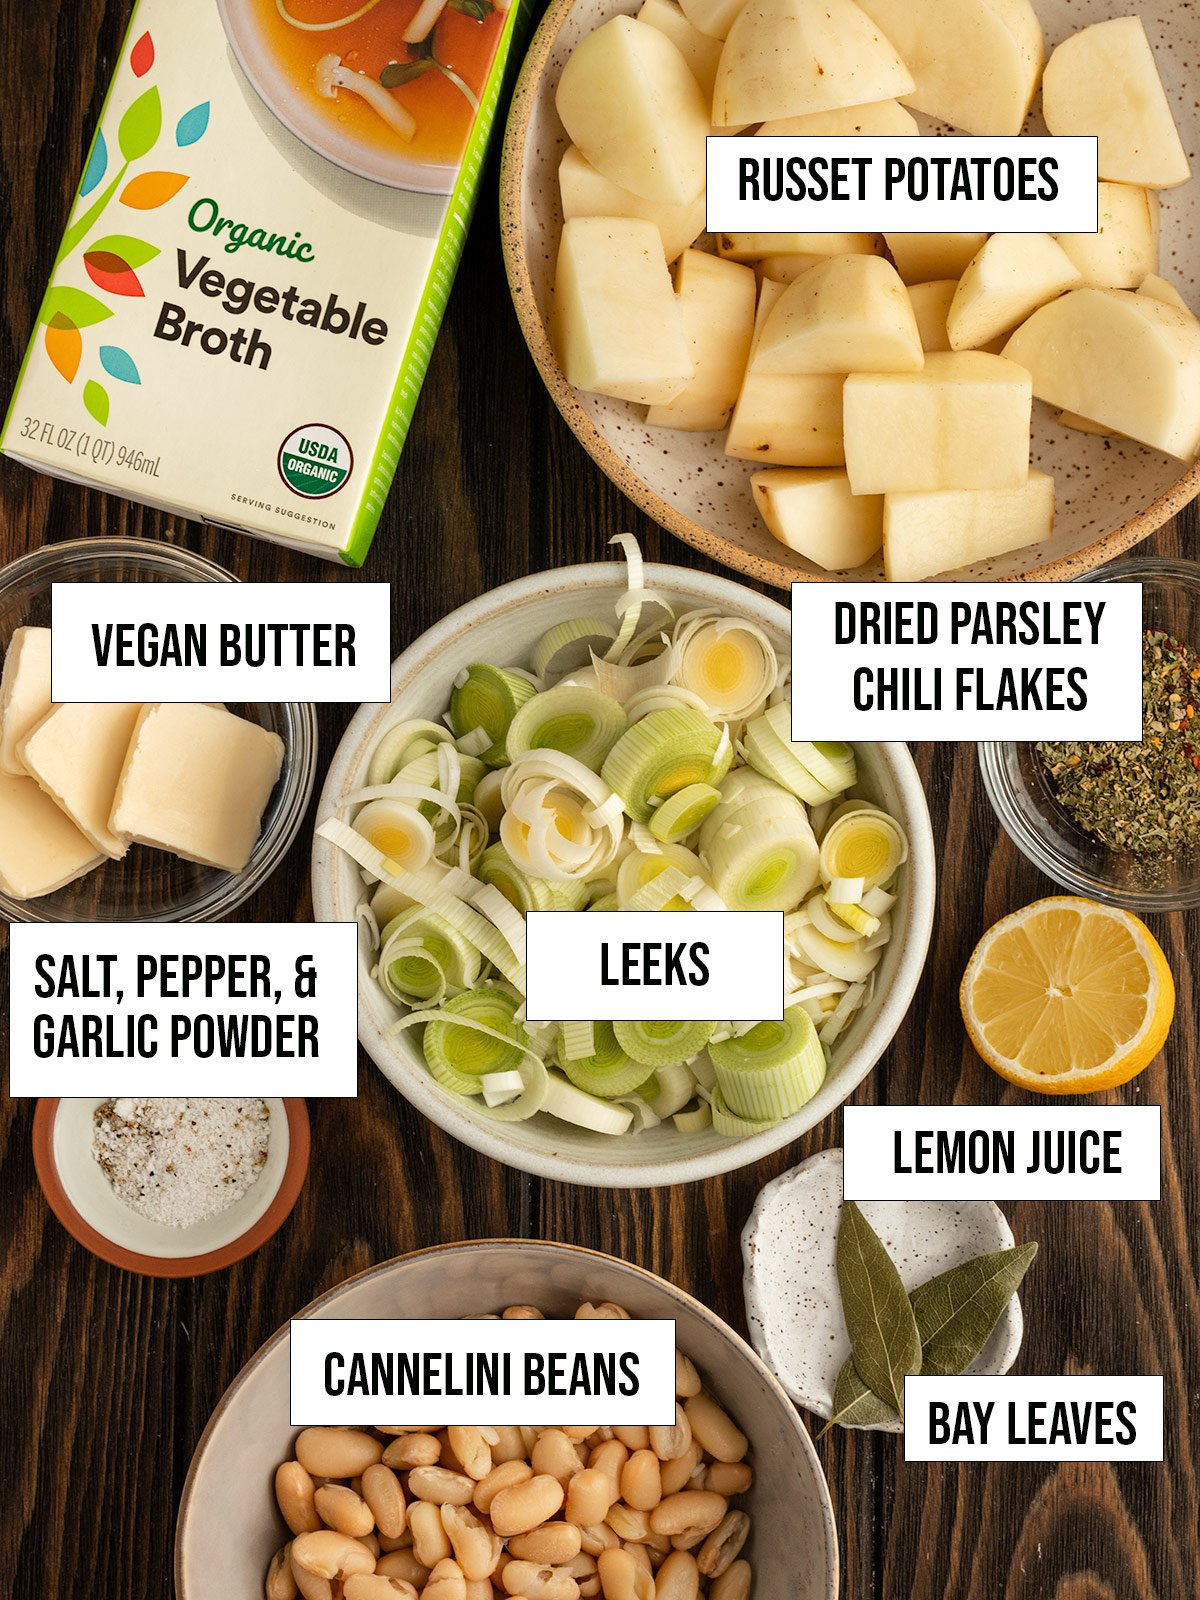 ingredients including potatoes, leeks, vegetable broth, spices, vegan butter, lemon juice, and cannelini beans